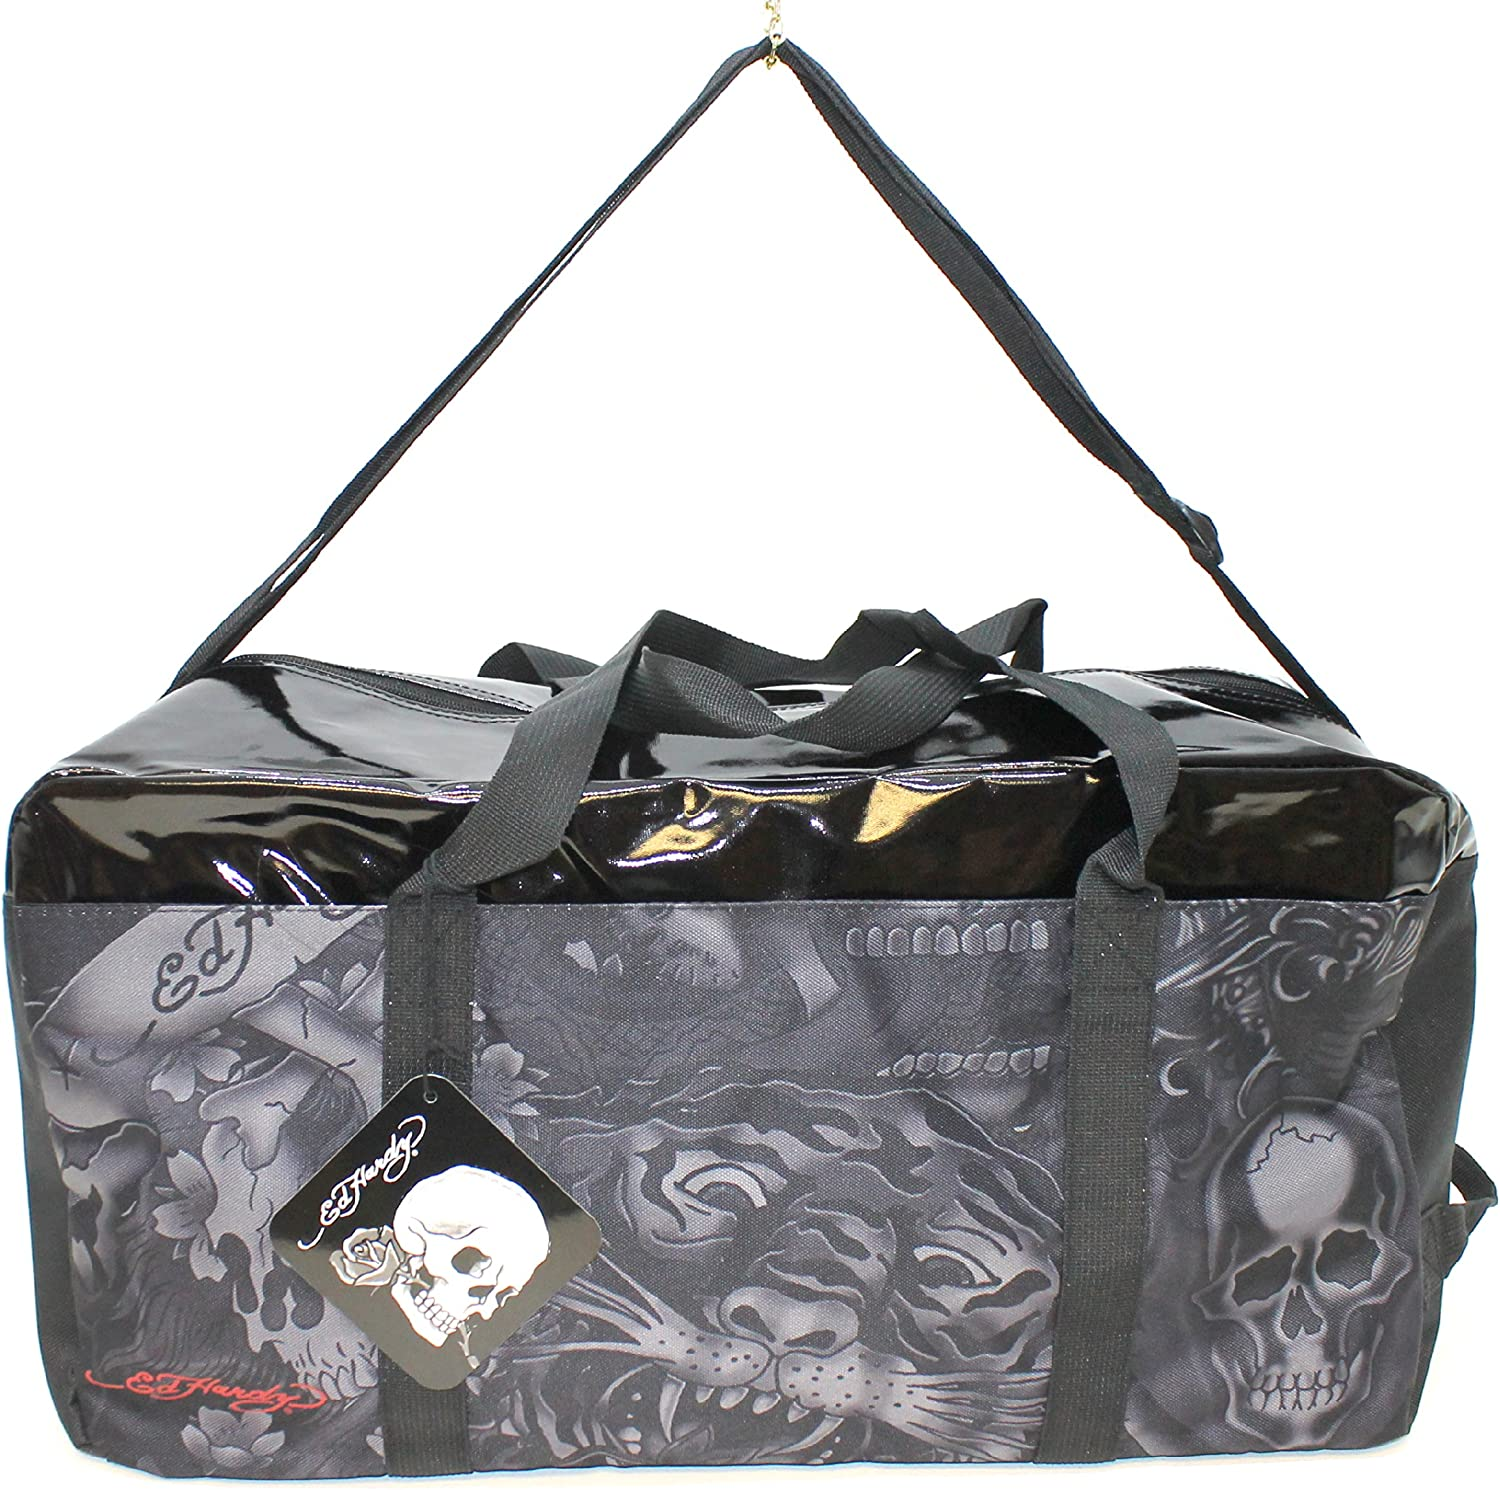 ED HARDY BLACK SHINY TOP OVERNIGHT// WEEKEND BAG WITH ADJUSTABLE STRAP NEW